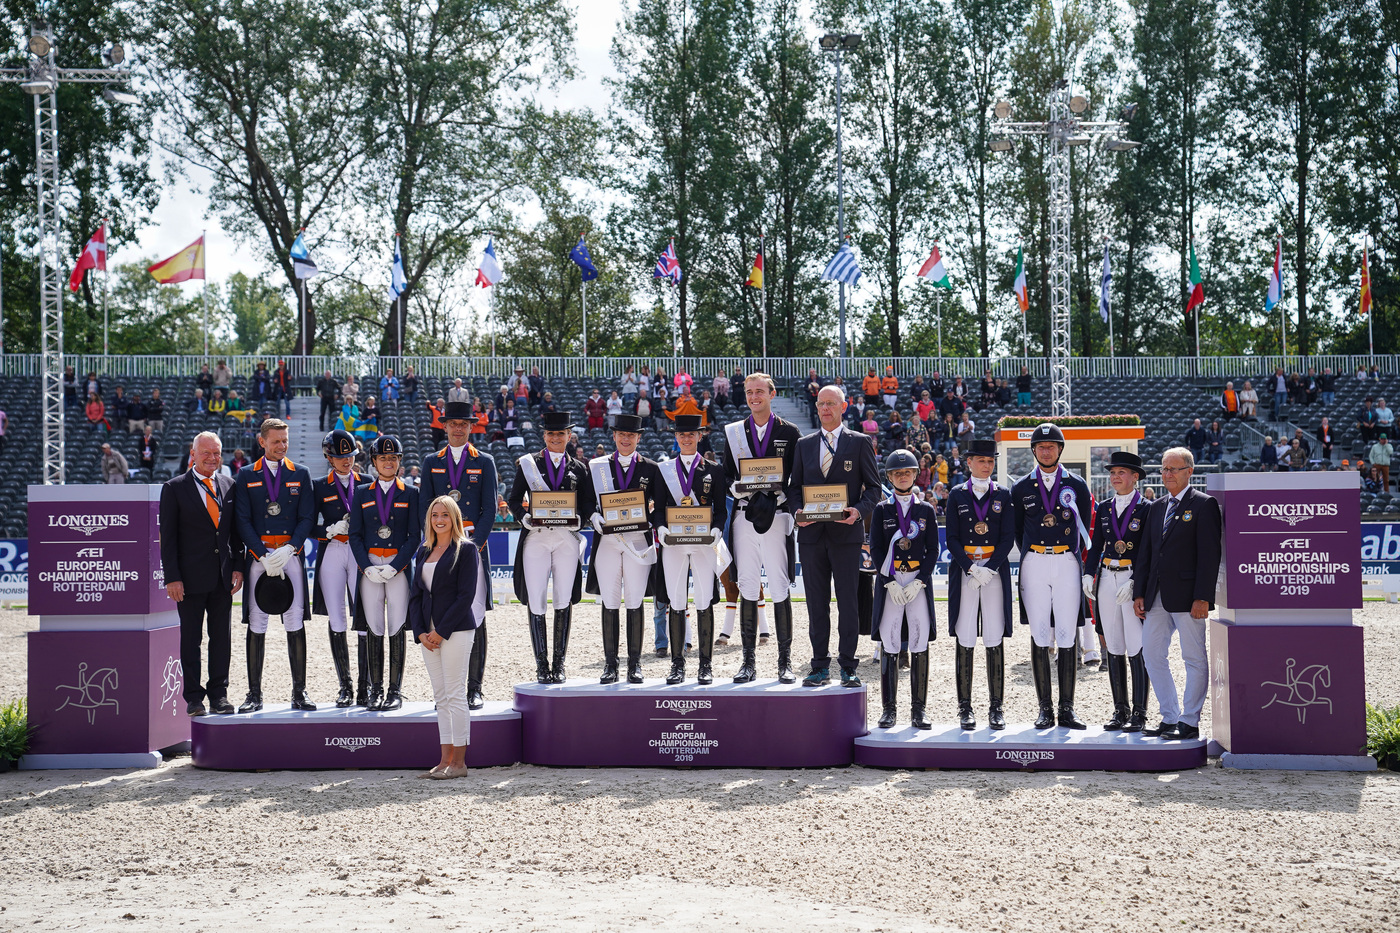 Longines Show Jumping Event: One week of captivating competitions and exceptional performances at the Longines FEI European Championships 2019 7